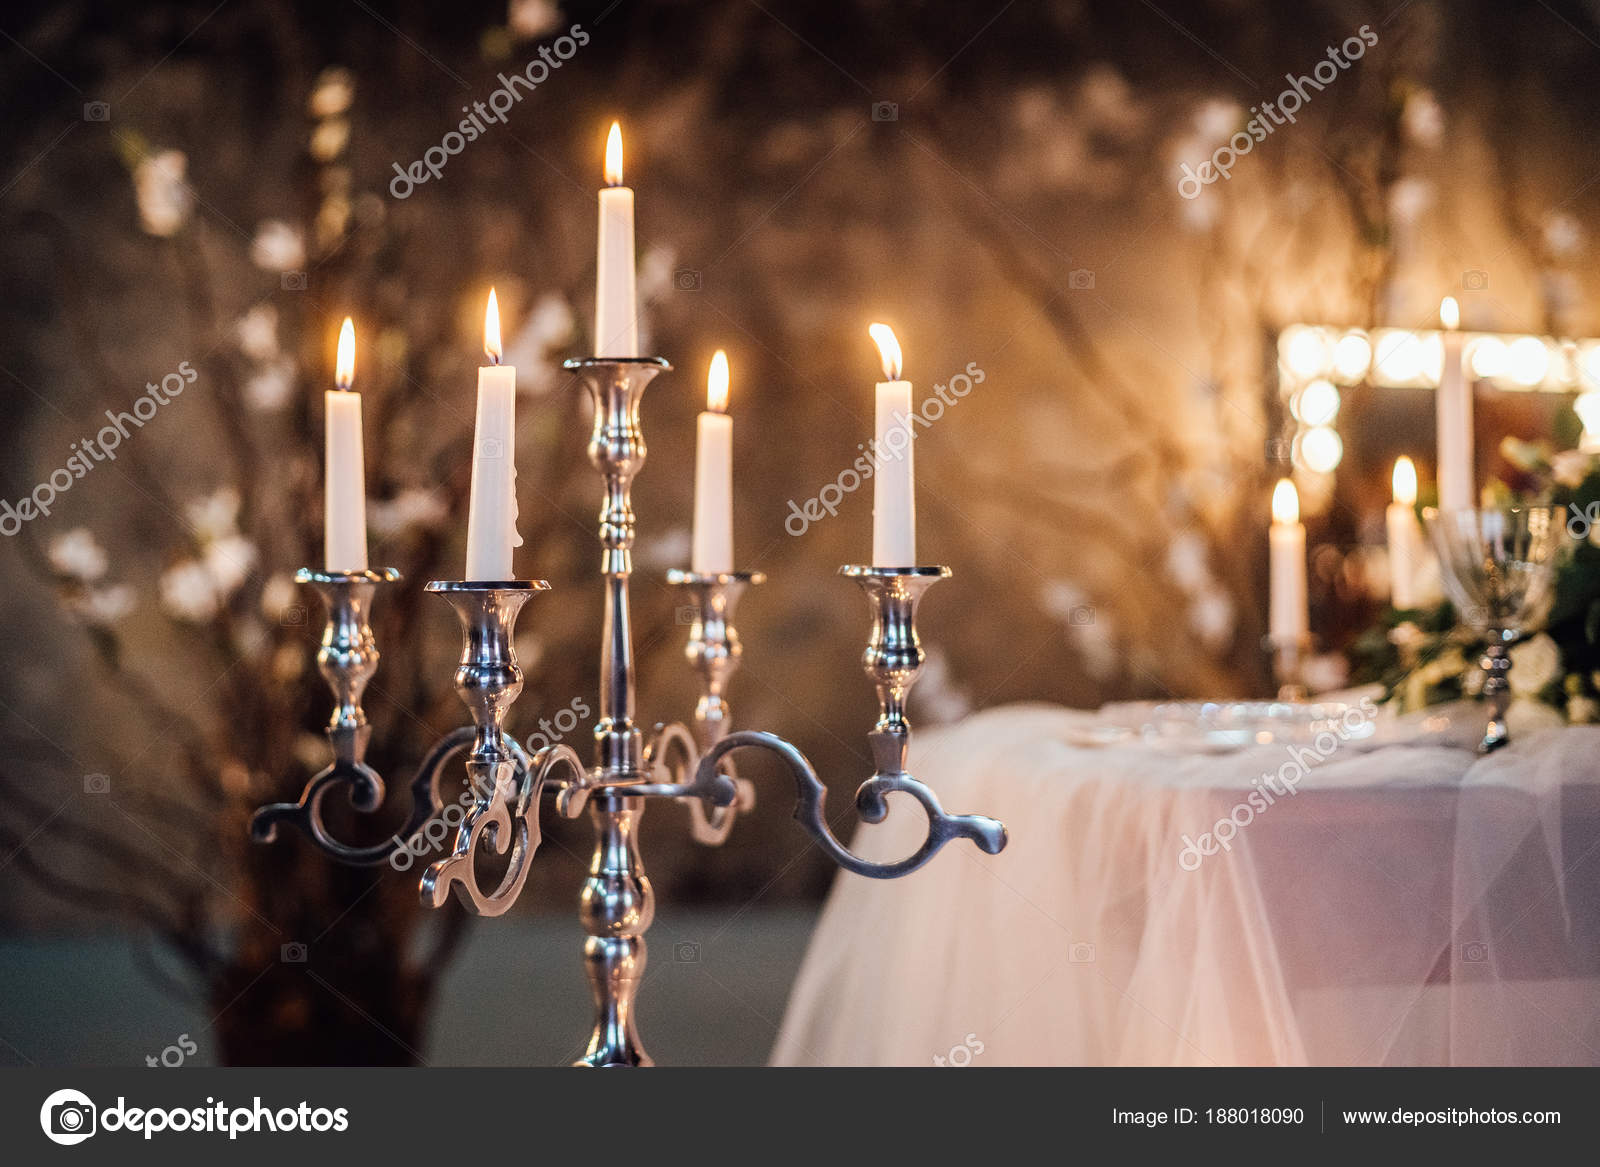 Photo Outdoor Restaurant Table Setting Wedding Flowers Burning - Restaurant table candles